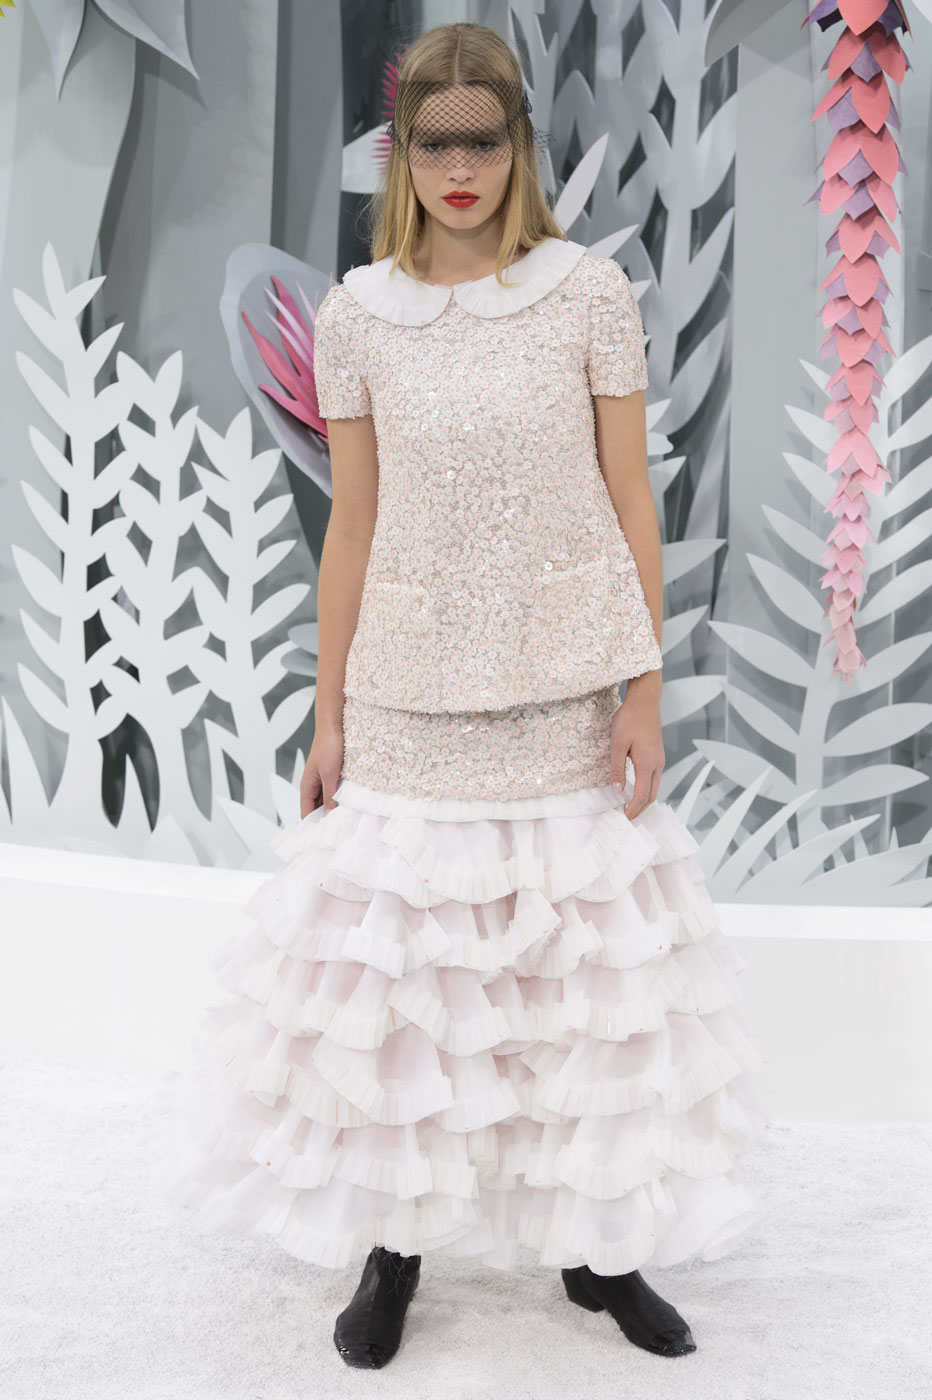 Chanel-fashion-runway-show-haute-couture-paris-spring-summer-2015-the-impression-145